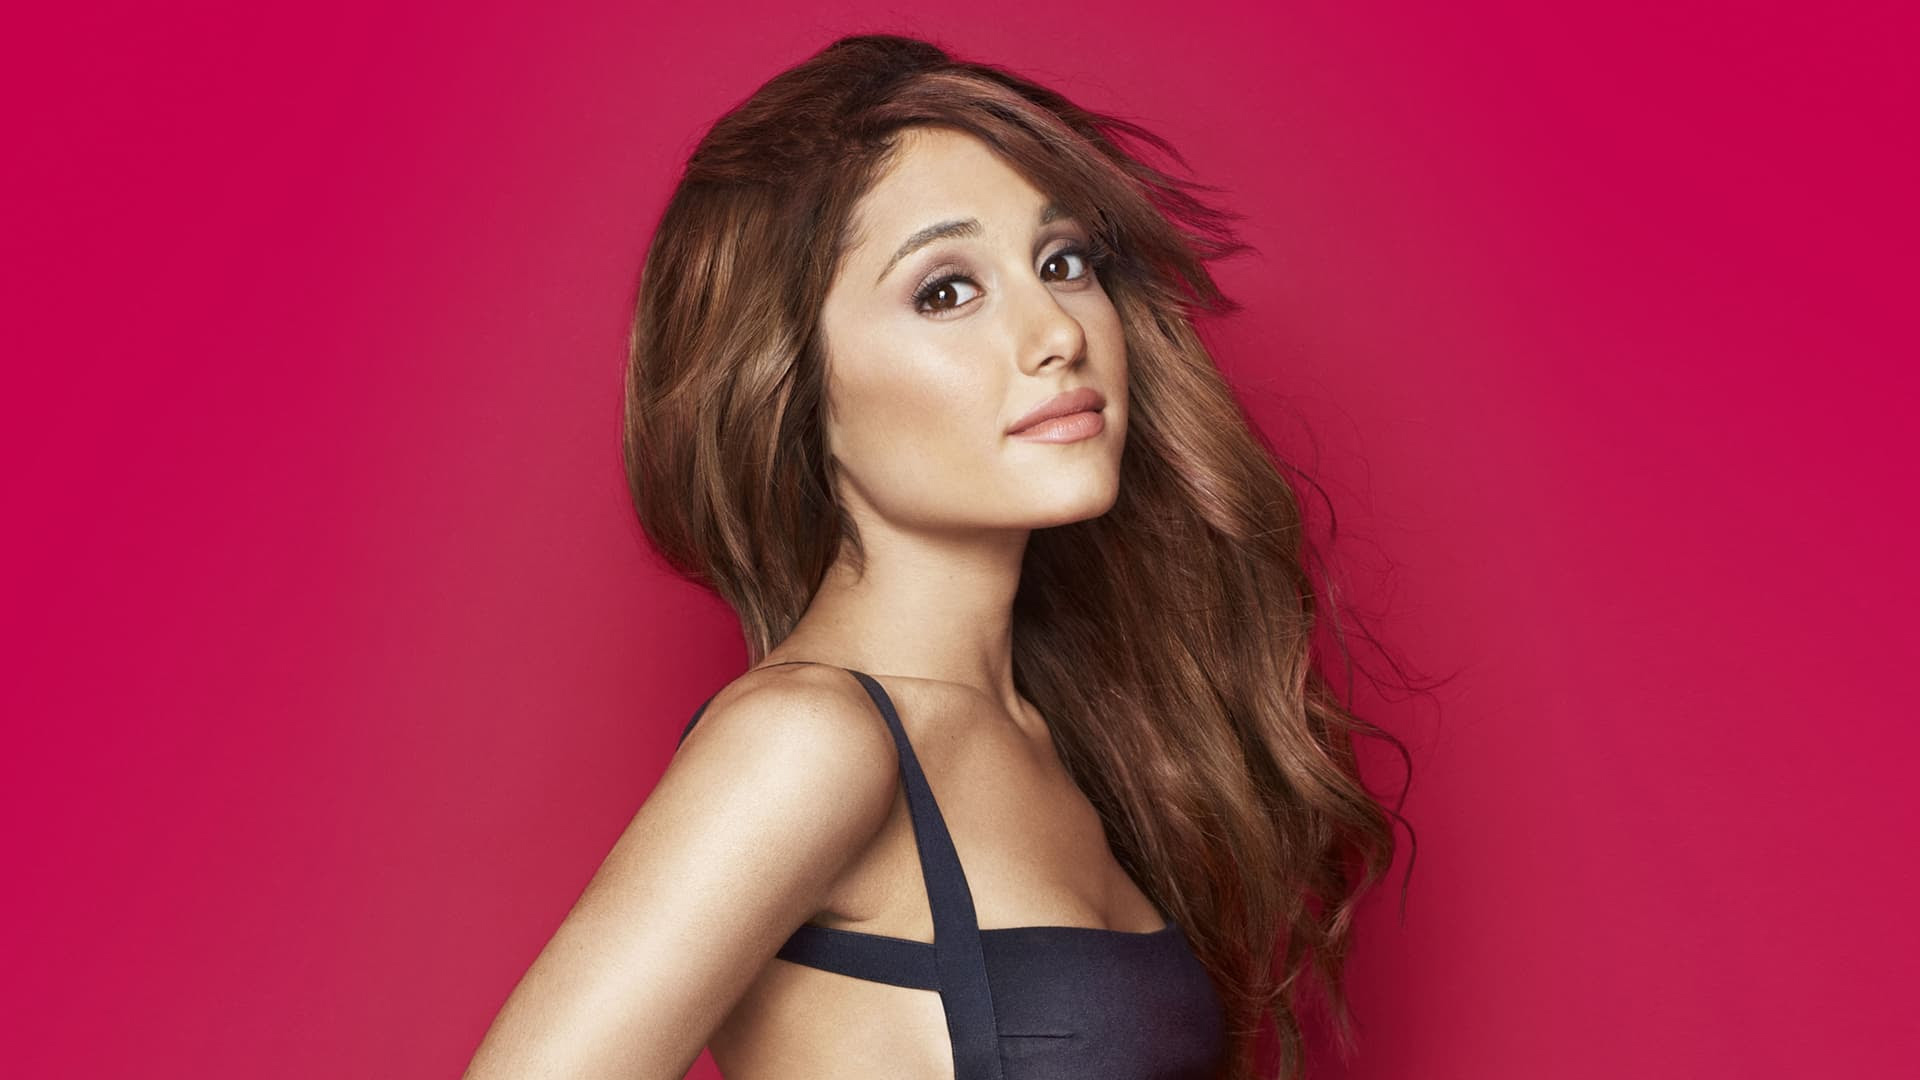 25+ Ariana Grande wallpapers High Quality Download